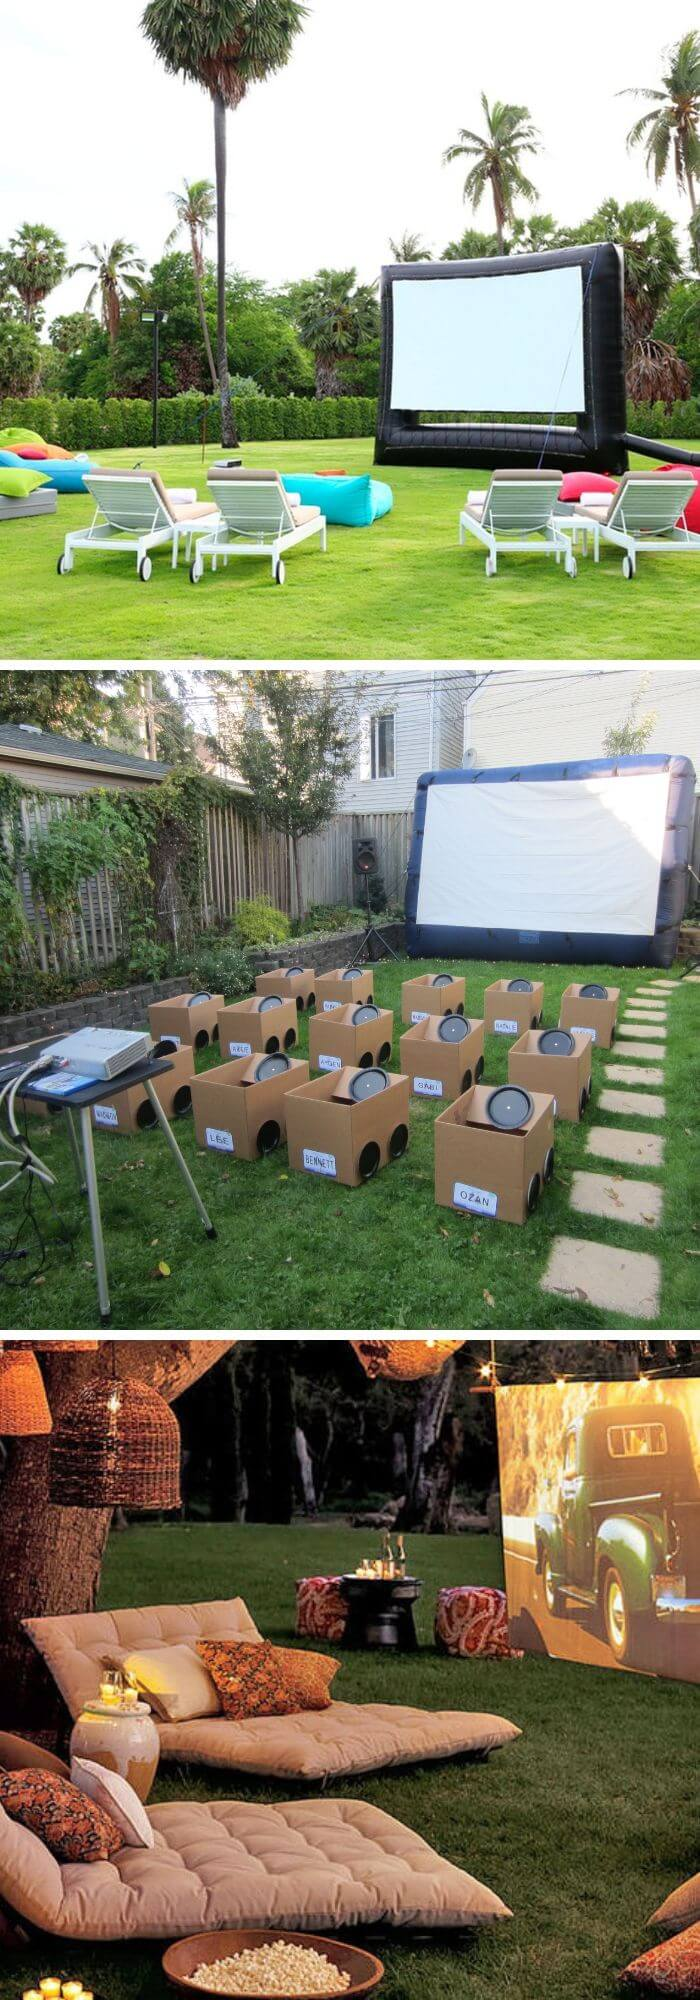 Backyard DIY Movie Theatre